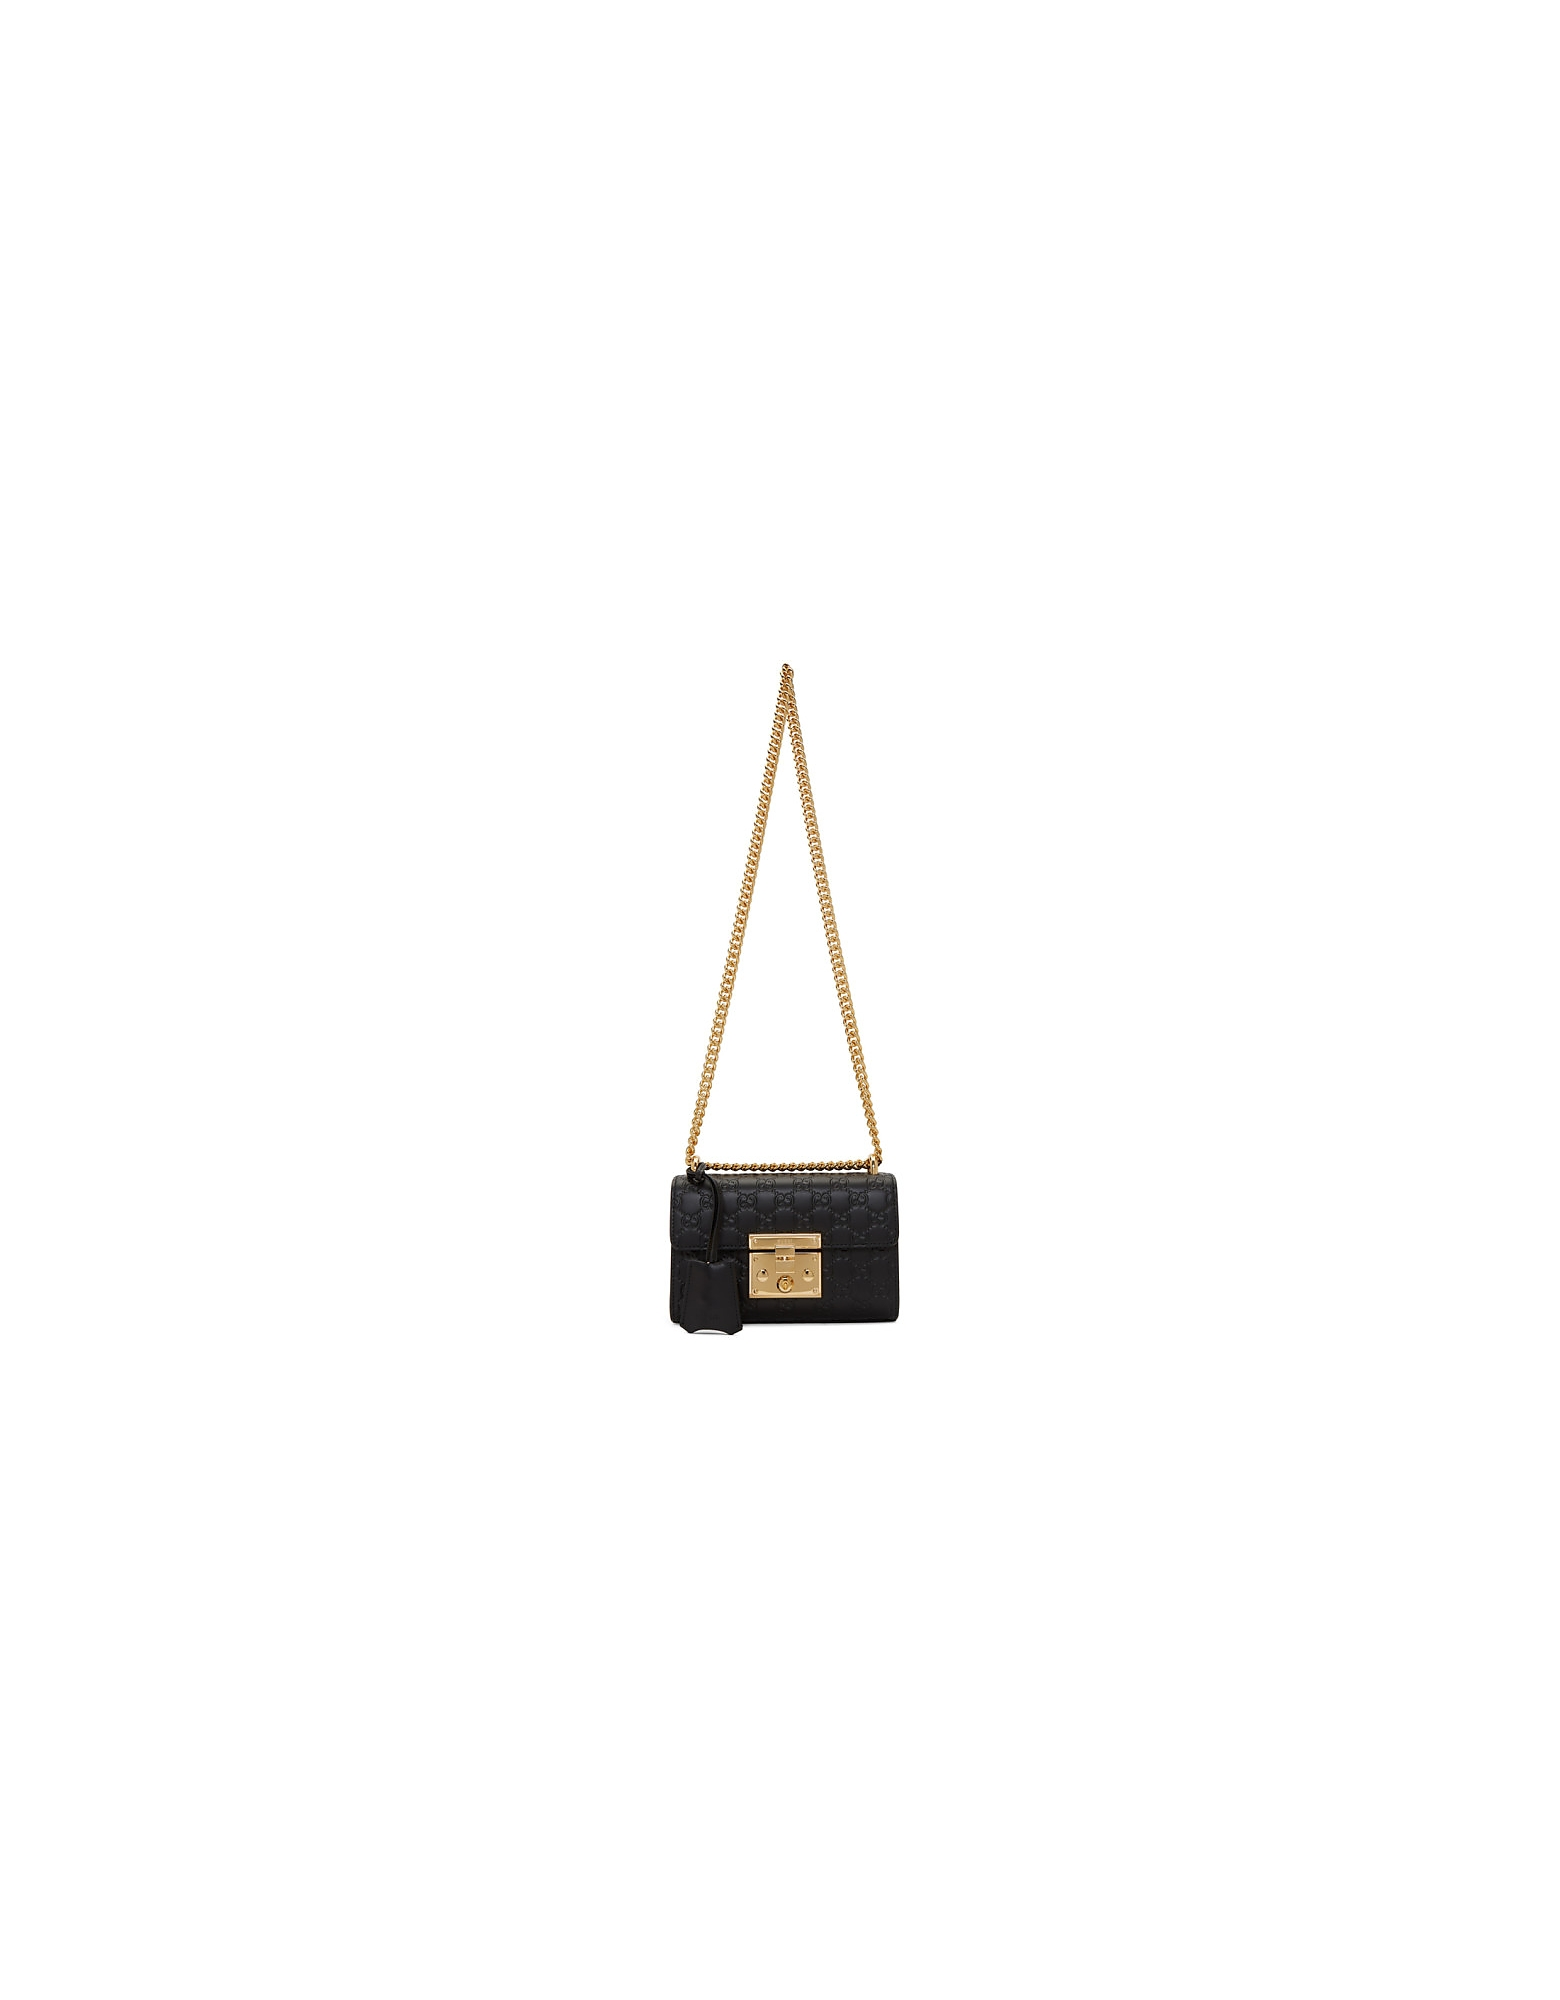 Gucci Designer Handbags, Black Small GG Padlock Bag